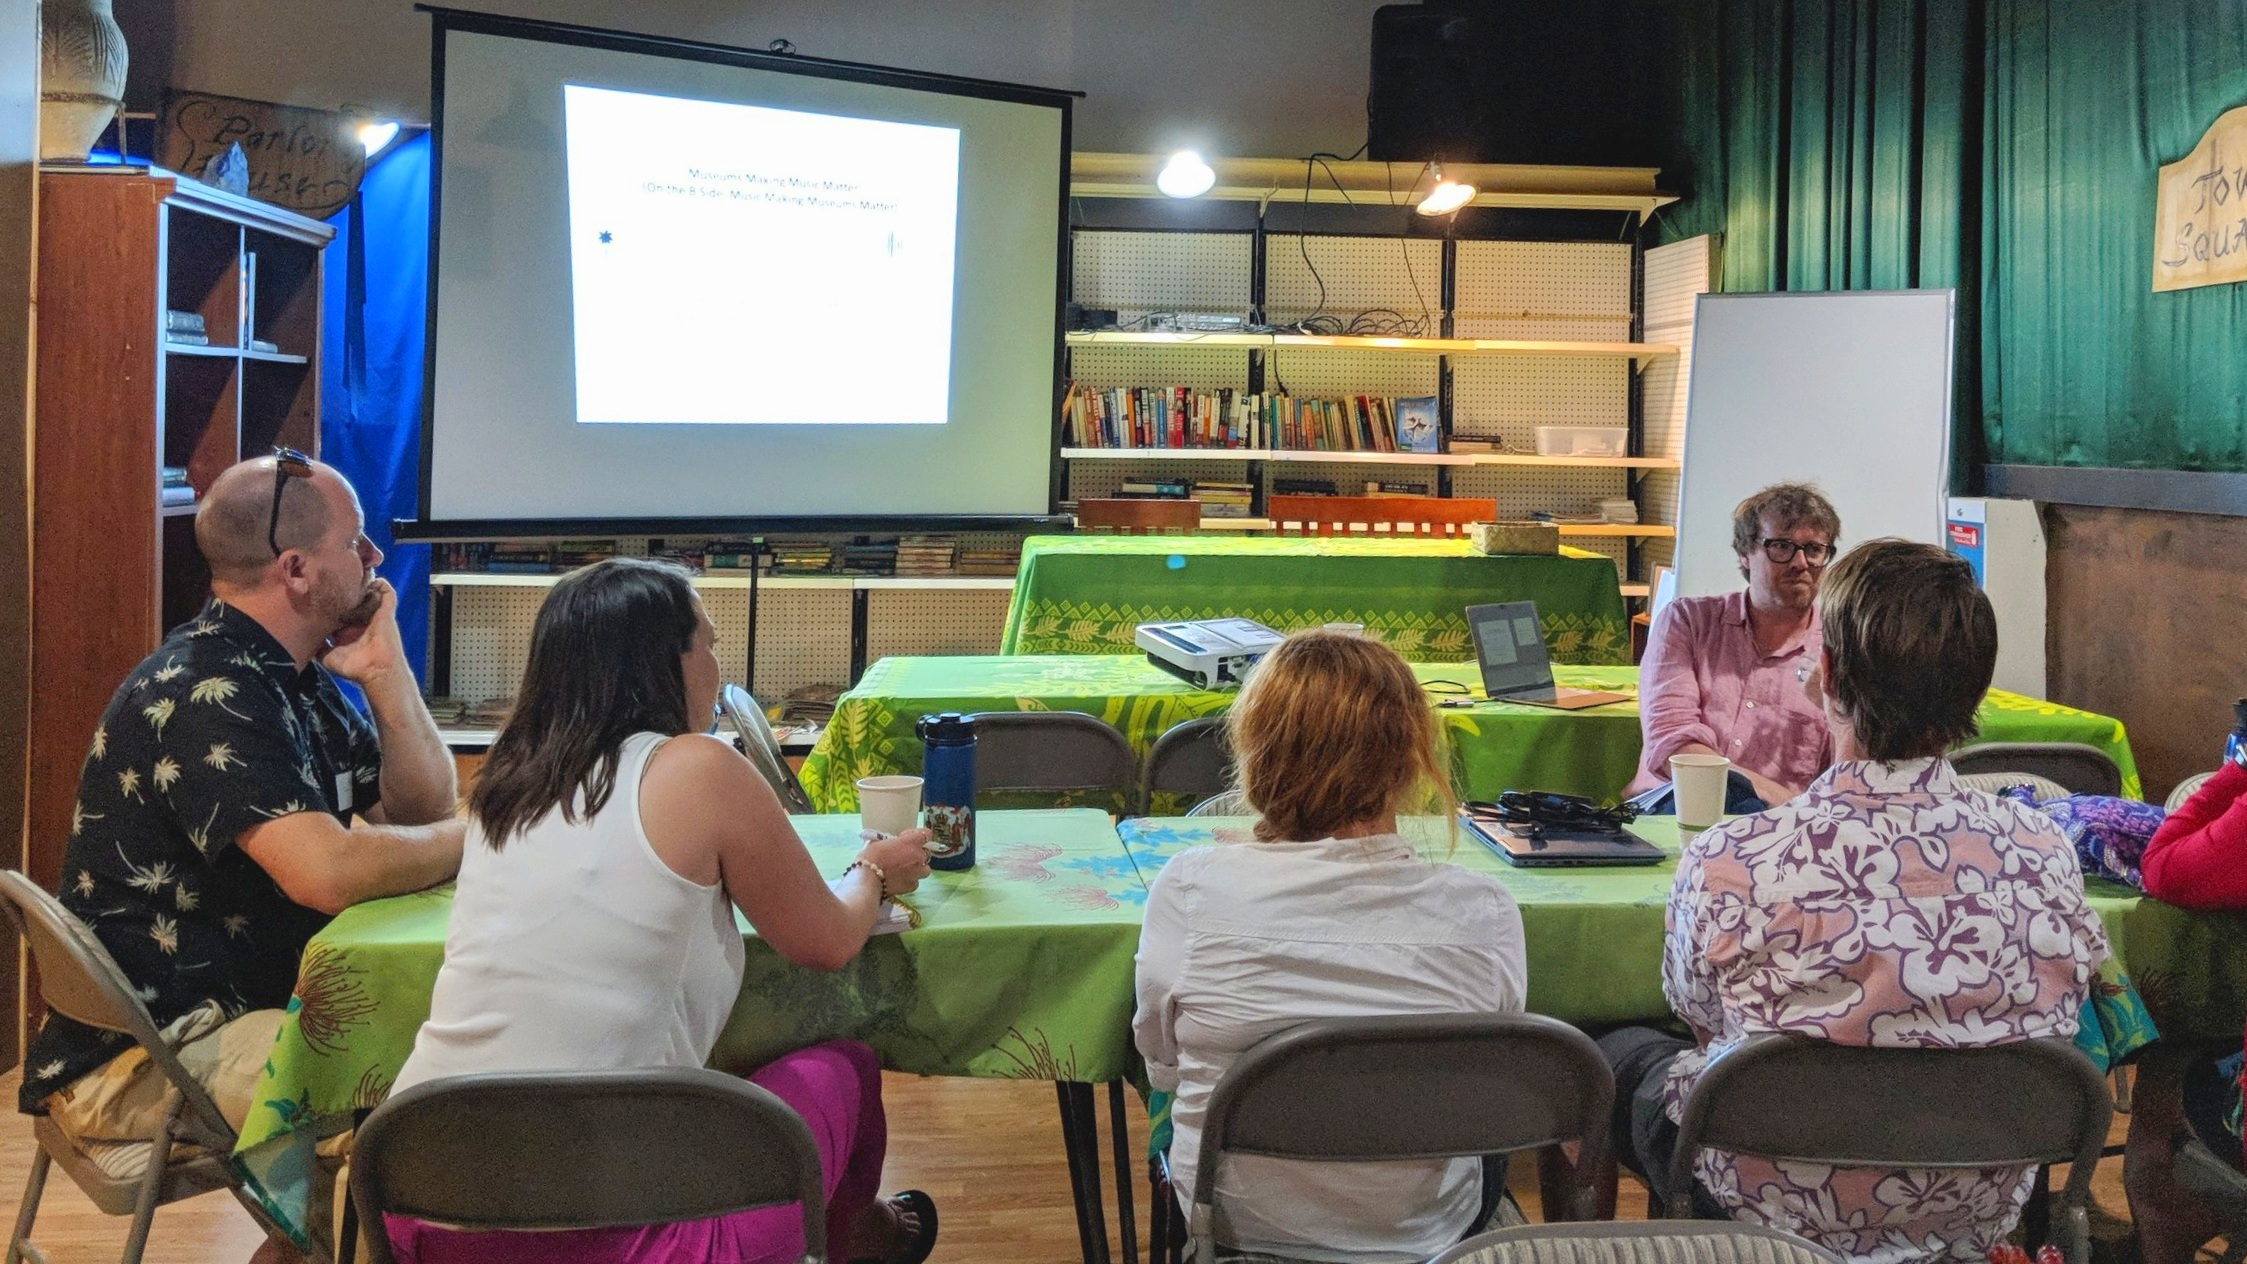 Music Preservation - John Troutman, the Smithsonian Curator of American Music from the National Museum of American History led a workshop Kona Historical Society hosted for museums professionals and the general public about music preservation and music making museums better.